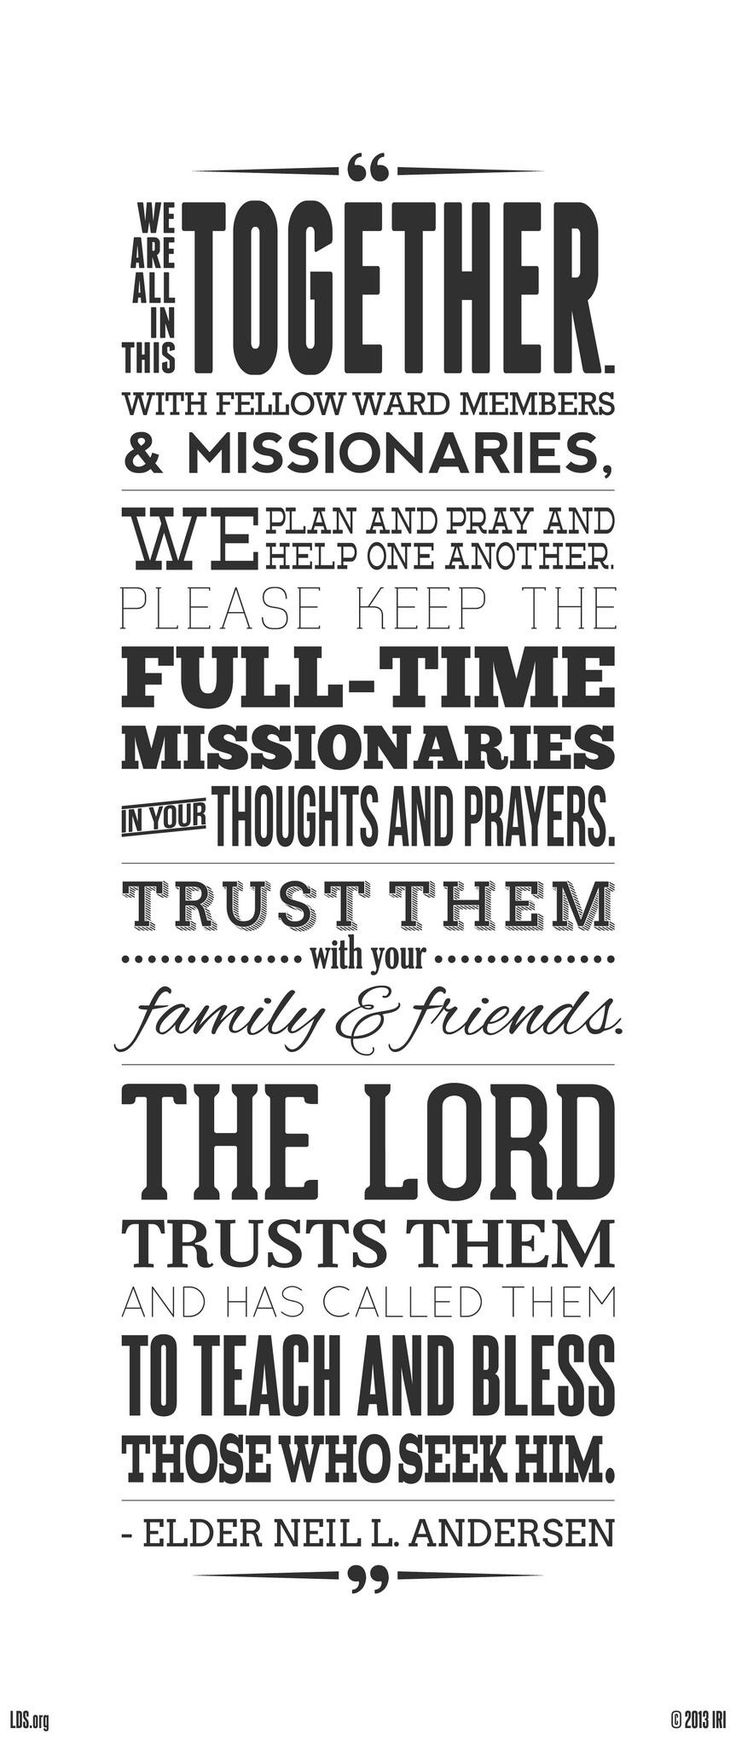 Lds missionary quotes or thoughts quotesgram - Missionaries Daily Quoteslds